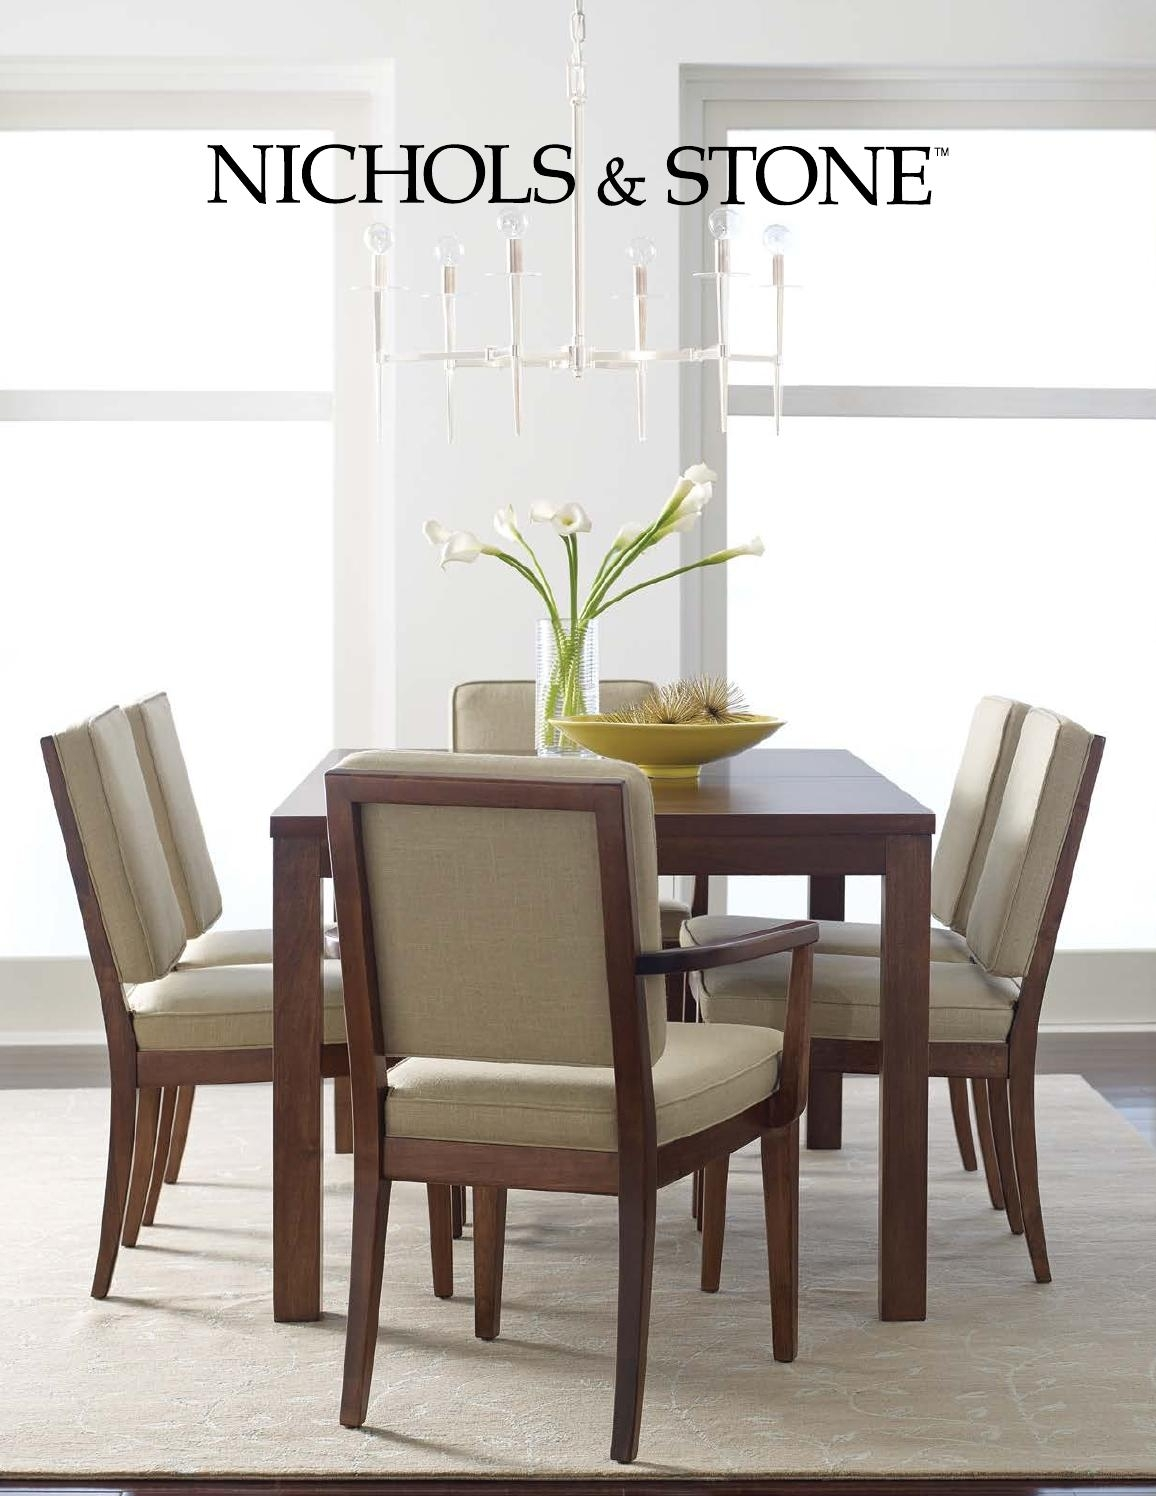 Nichols & Stone Catalogstickley – Issuu Intended For Most Recent Walden Extension Dining Tables (View 19 of 20)